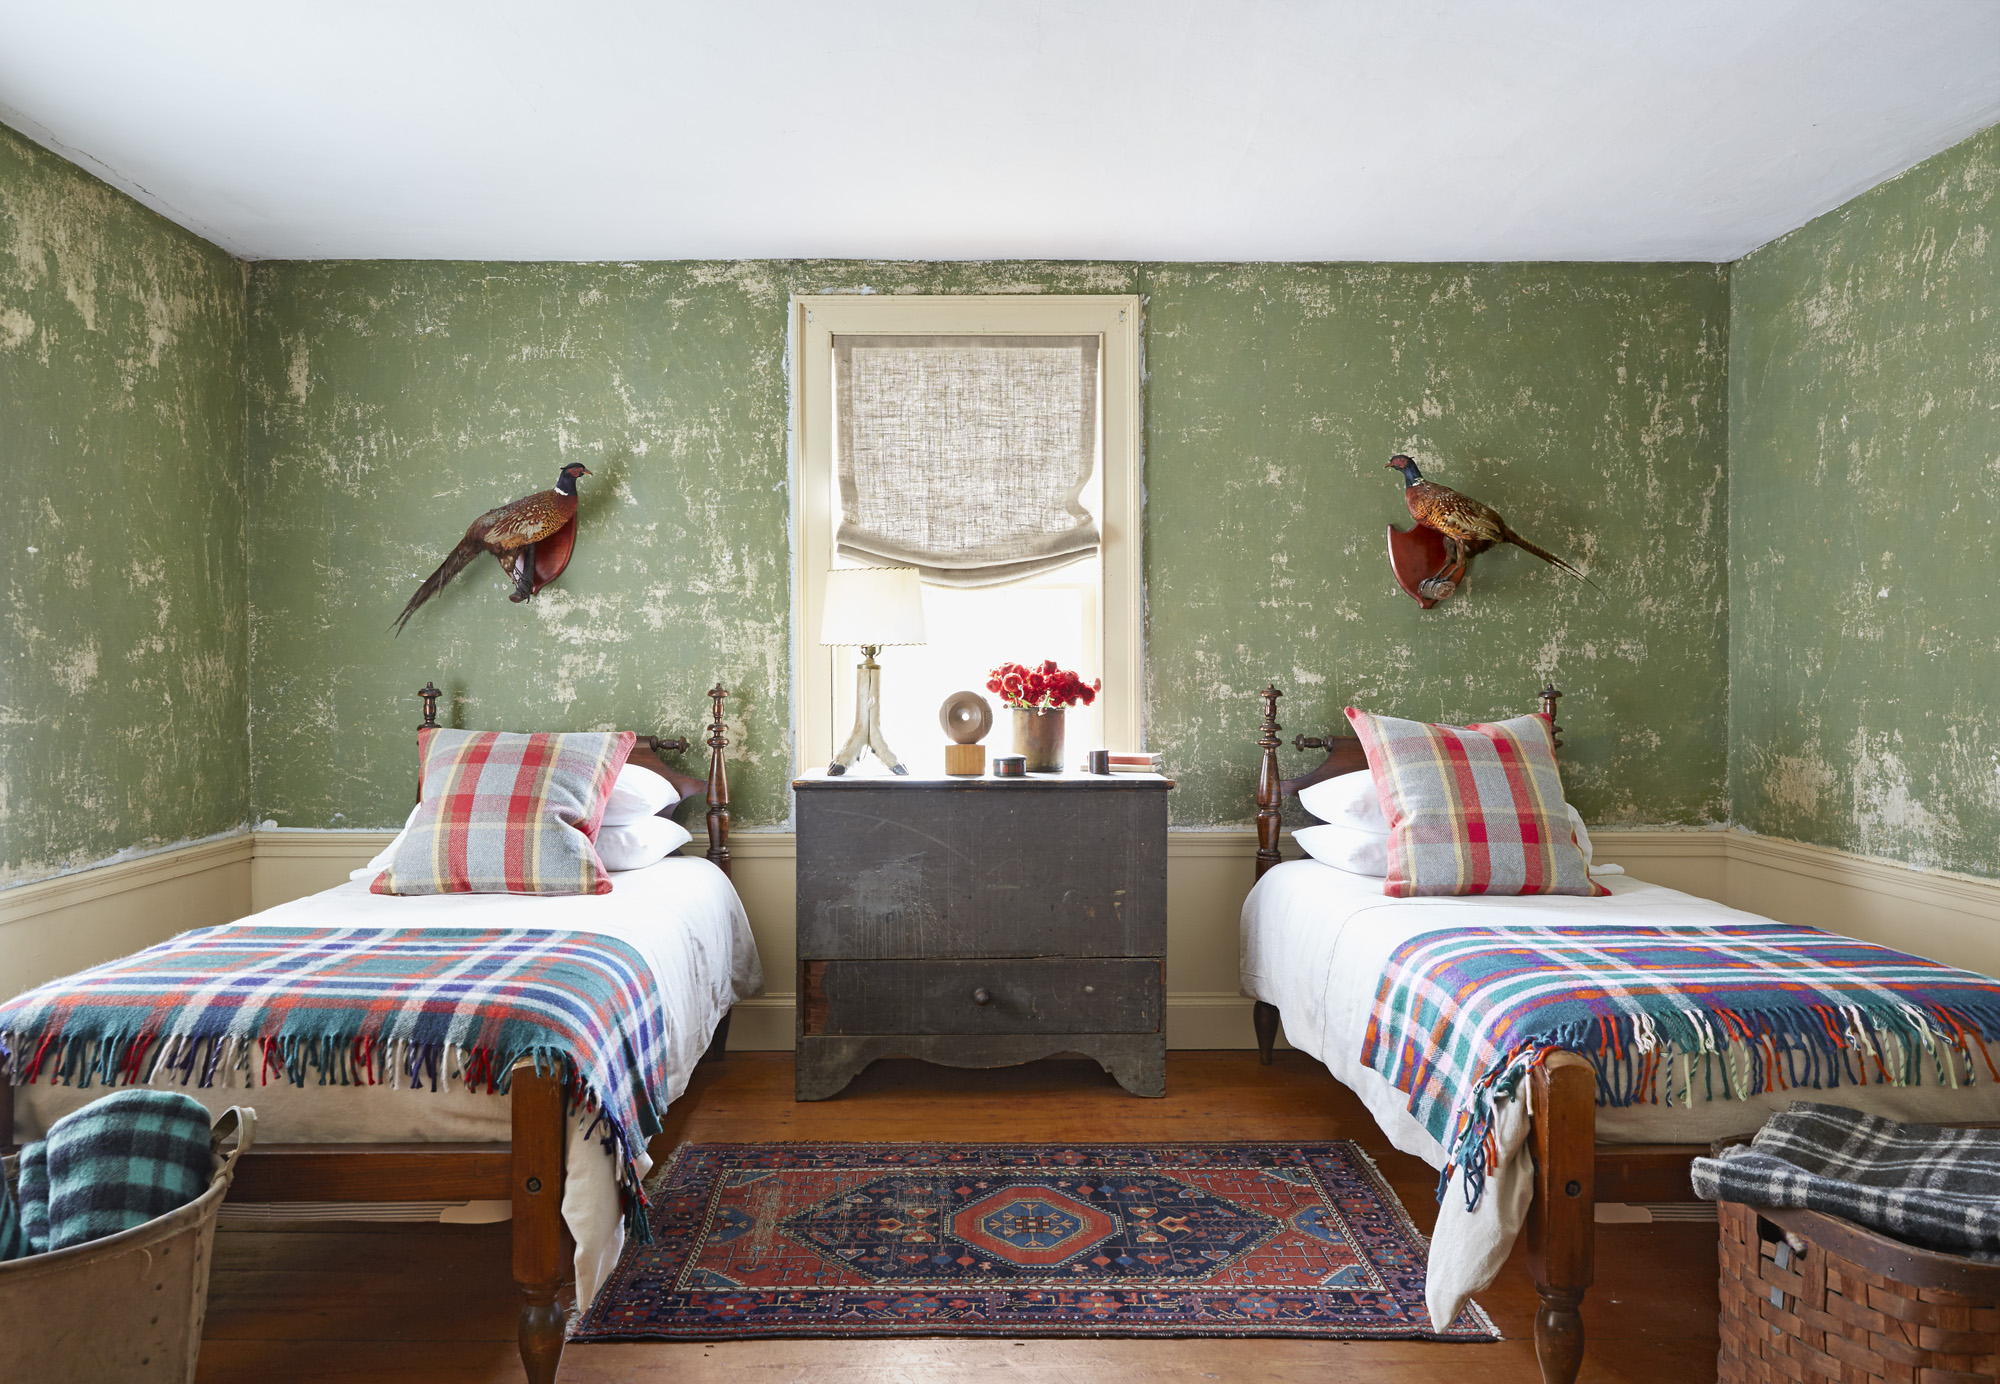 Decorating with Green - Ideas for Green Rooms and Home Decor